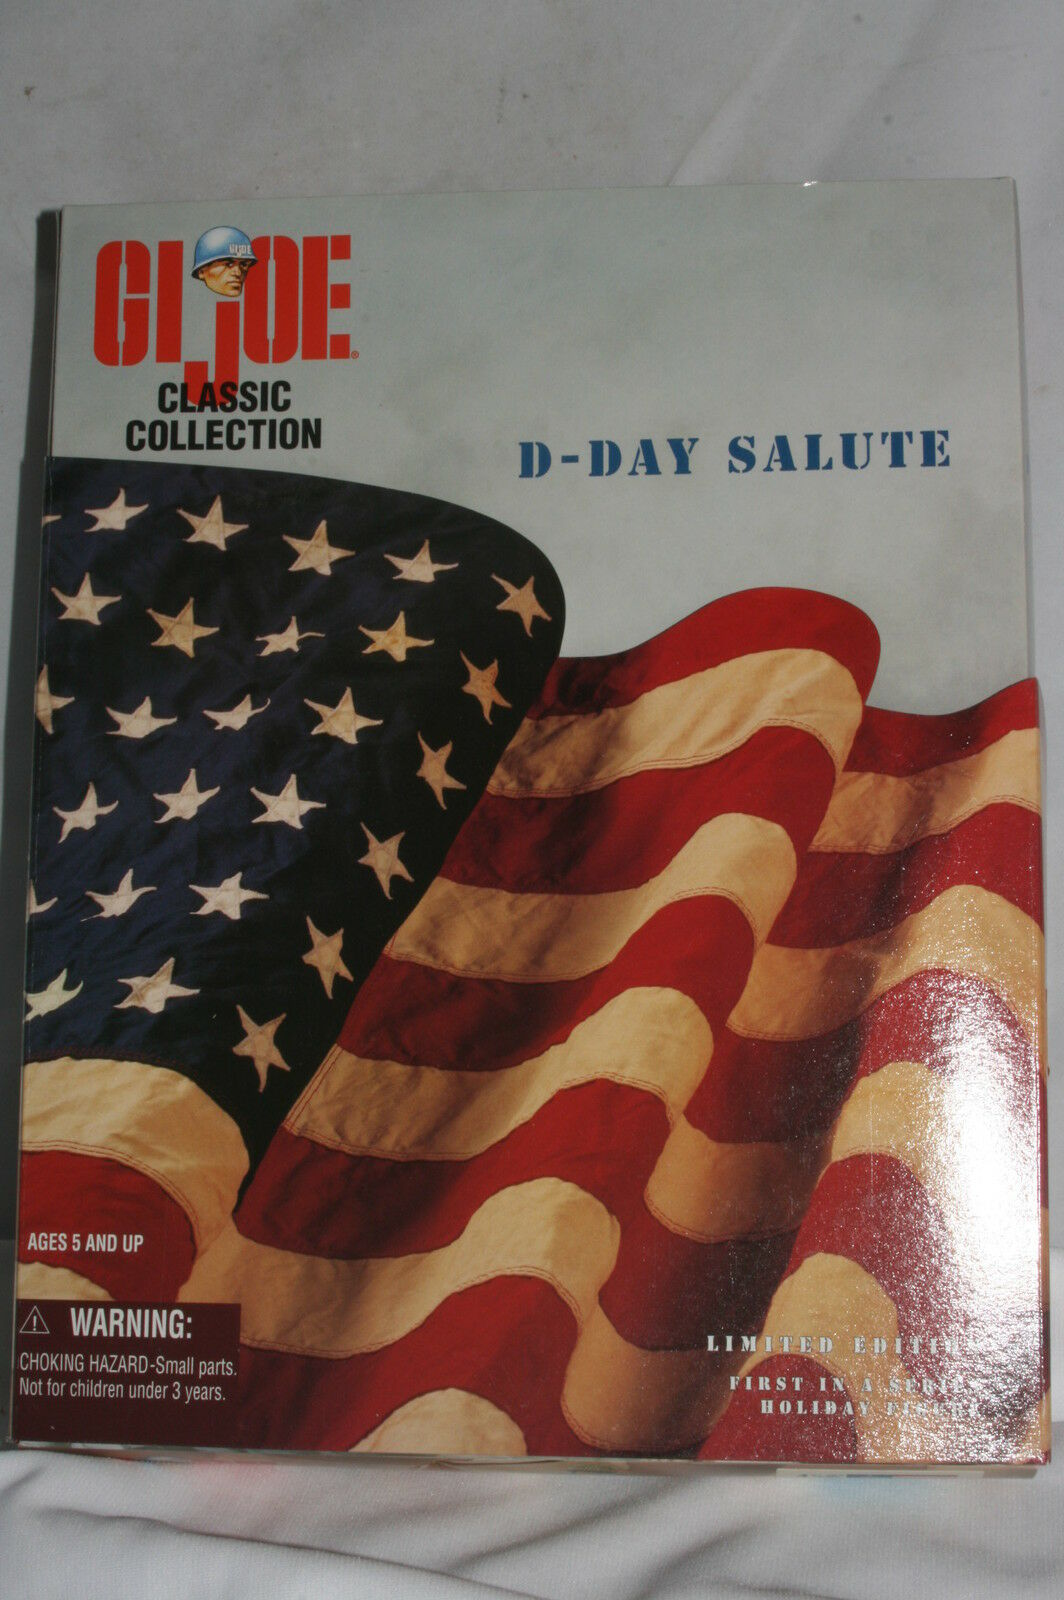 GI Joe Classic Collection, D-Day Salute Big rosso 1 African American, Mint Boxed